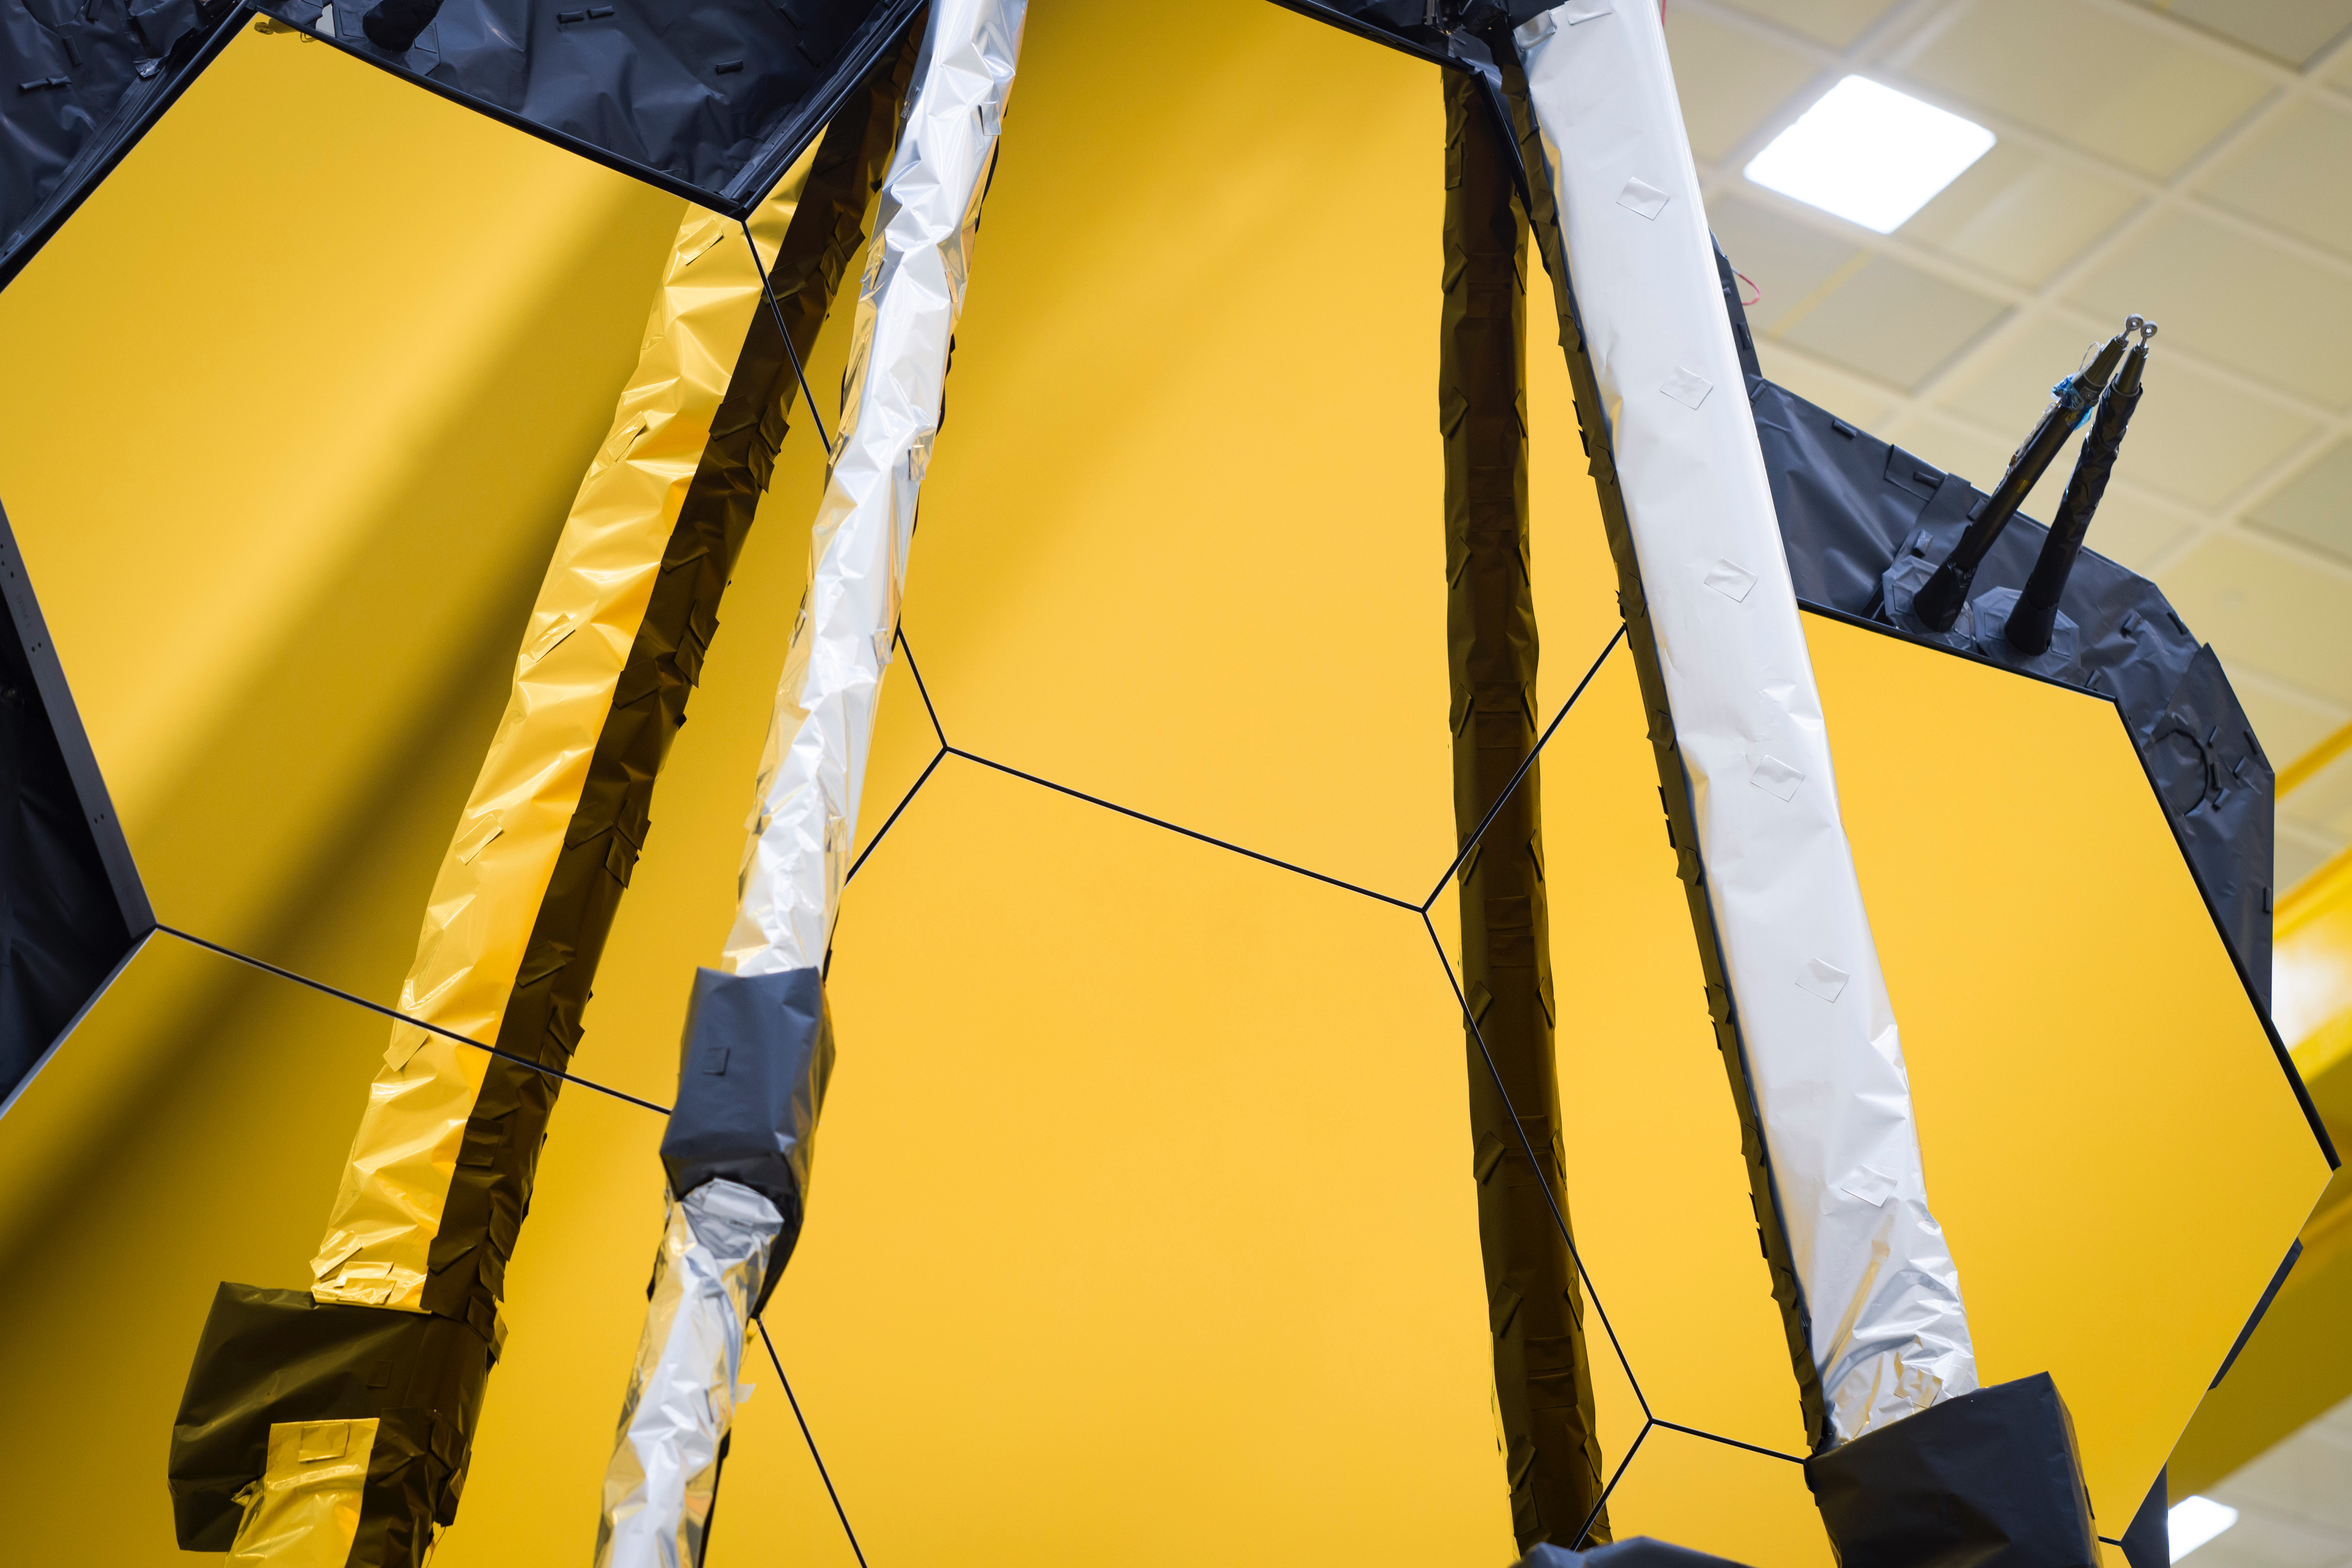 NASA's James Webb Space Telescope Completes Final Tests for Launch - NASA